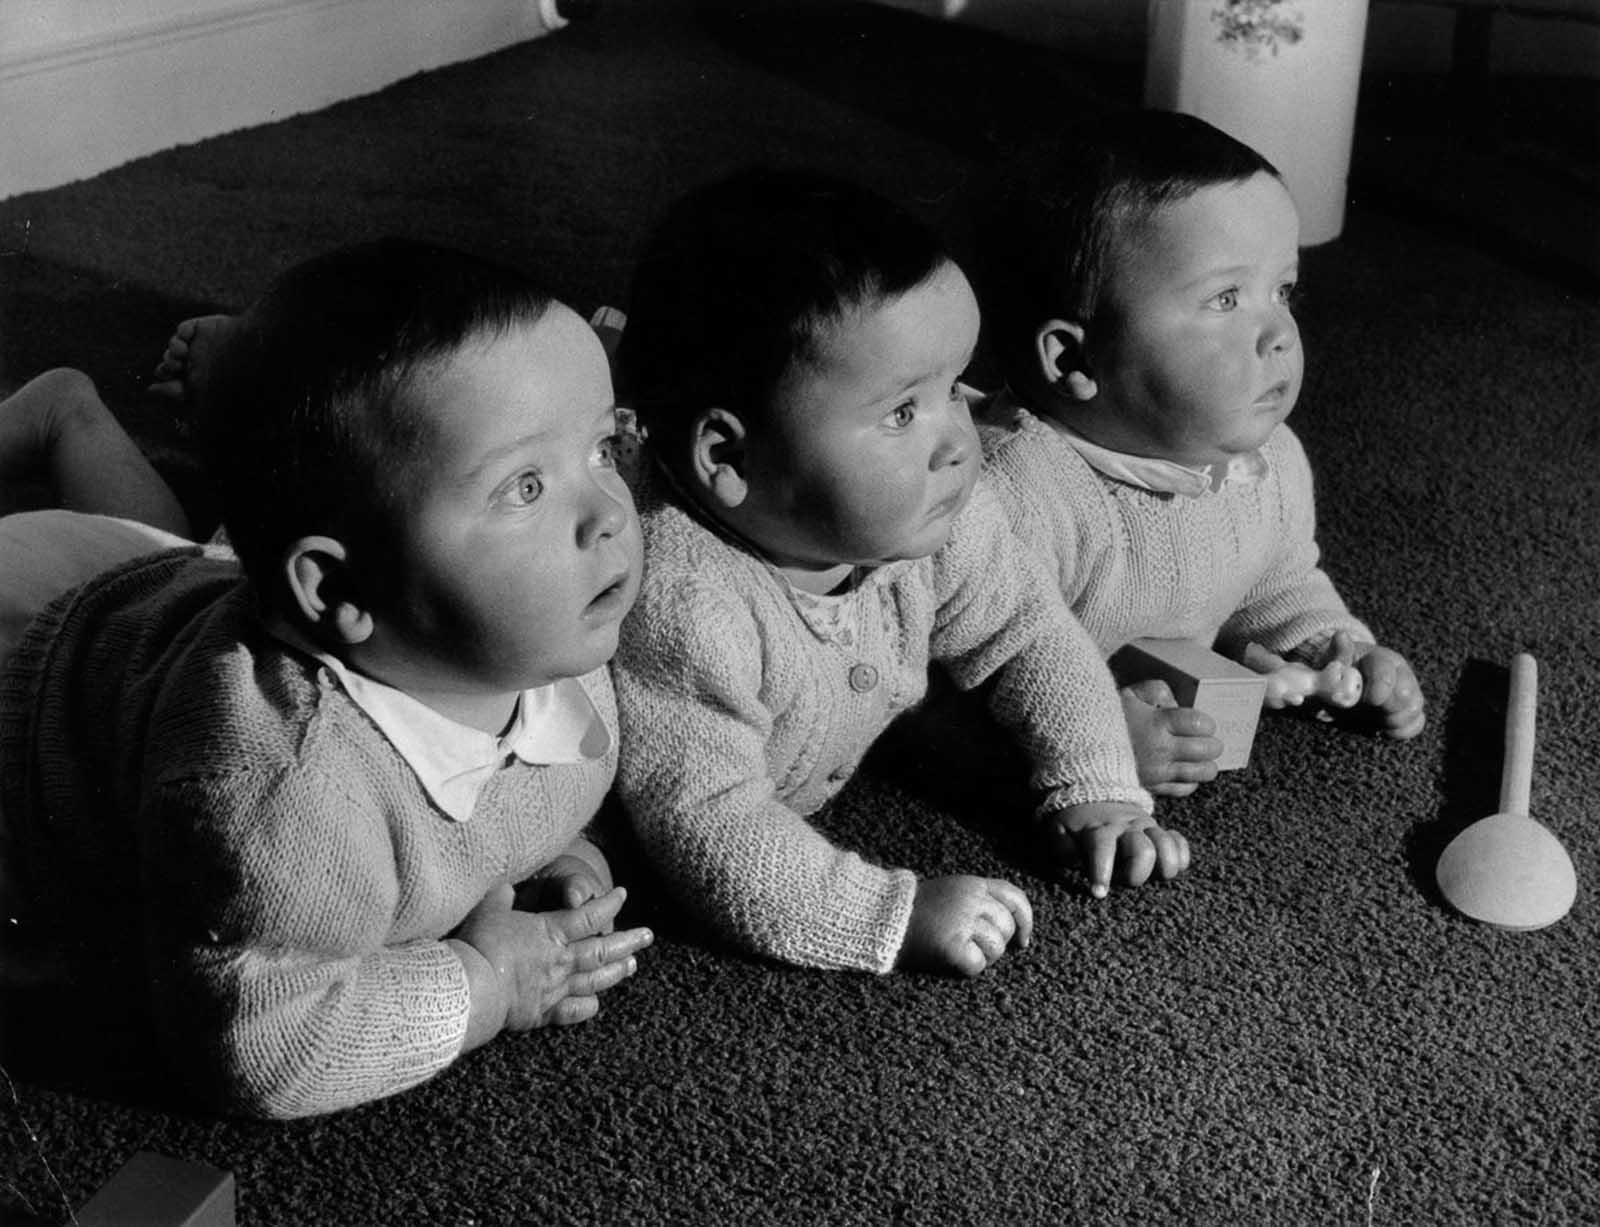 The Finslater triplets at home, 1955.